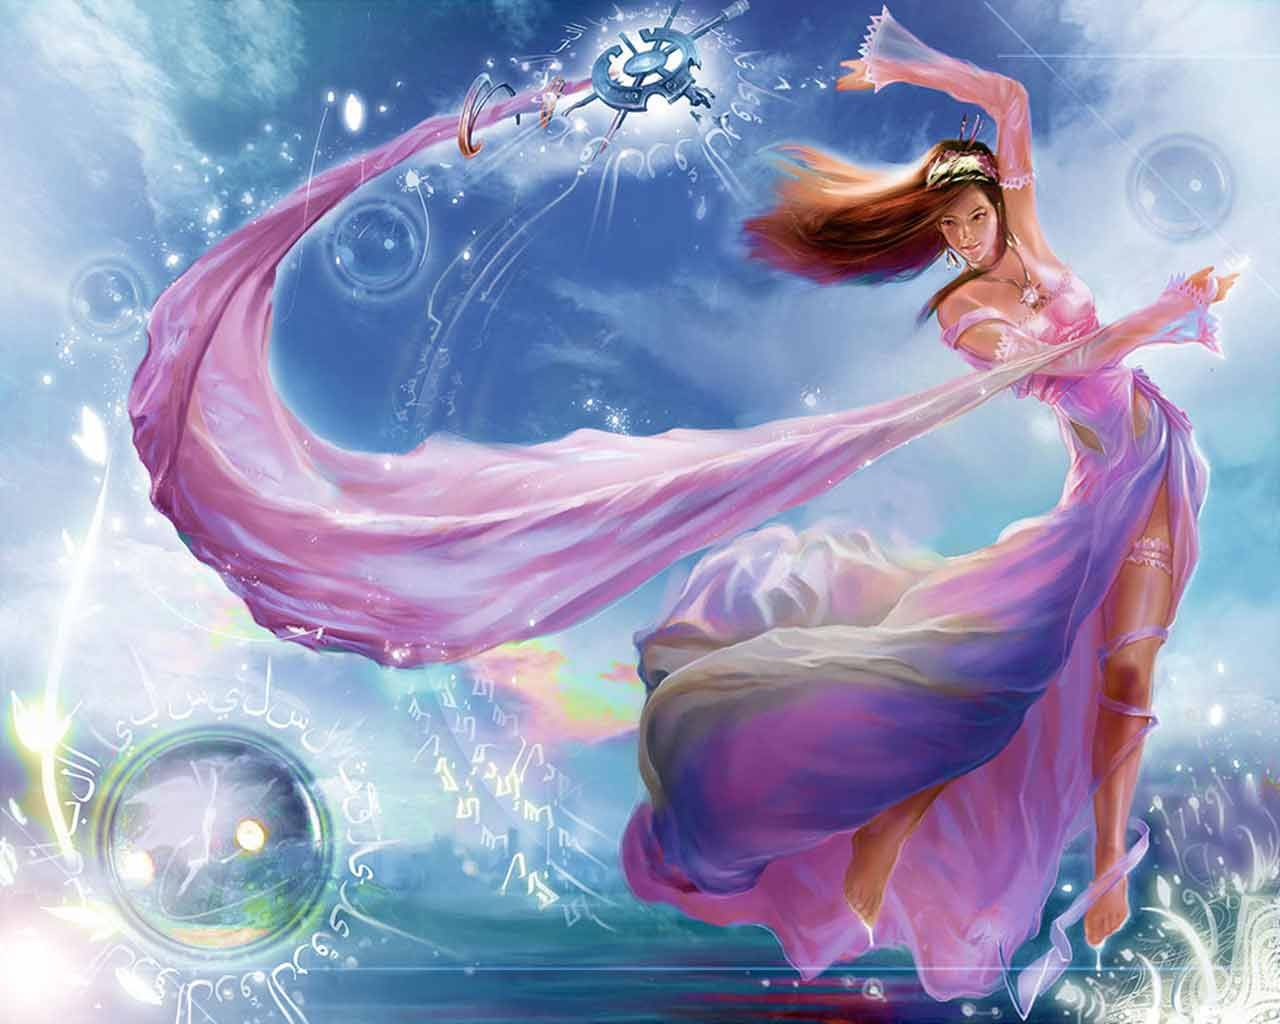 Fairy wallpapers hd hd wallpapers pinterest fairy wallpaper fairy wallpapers hd altavistaventures Image collections